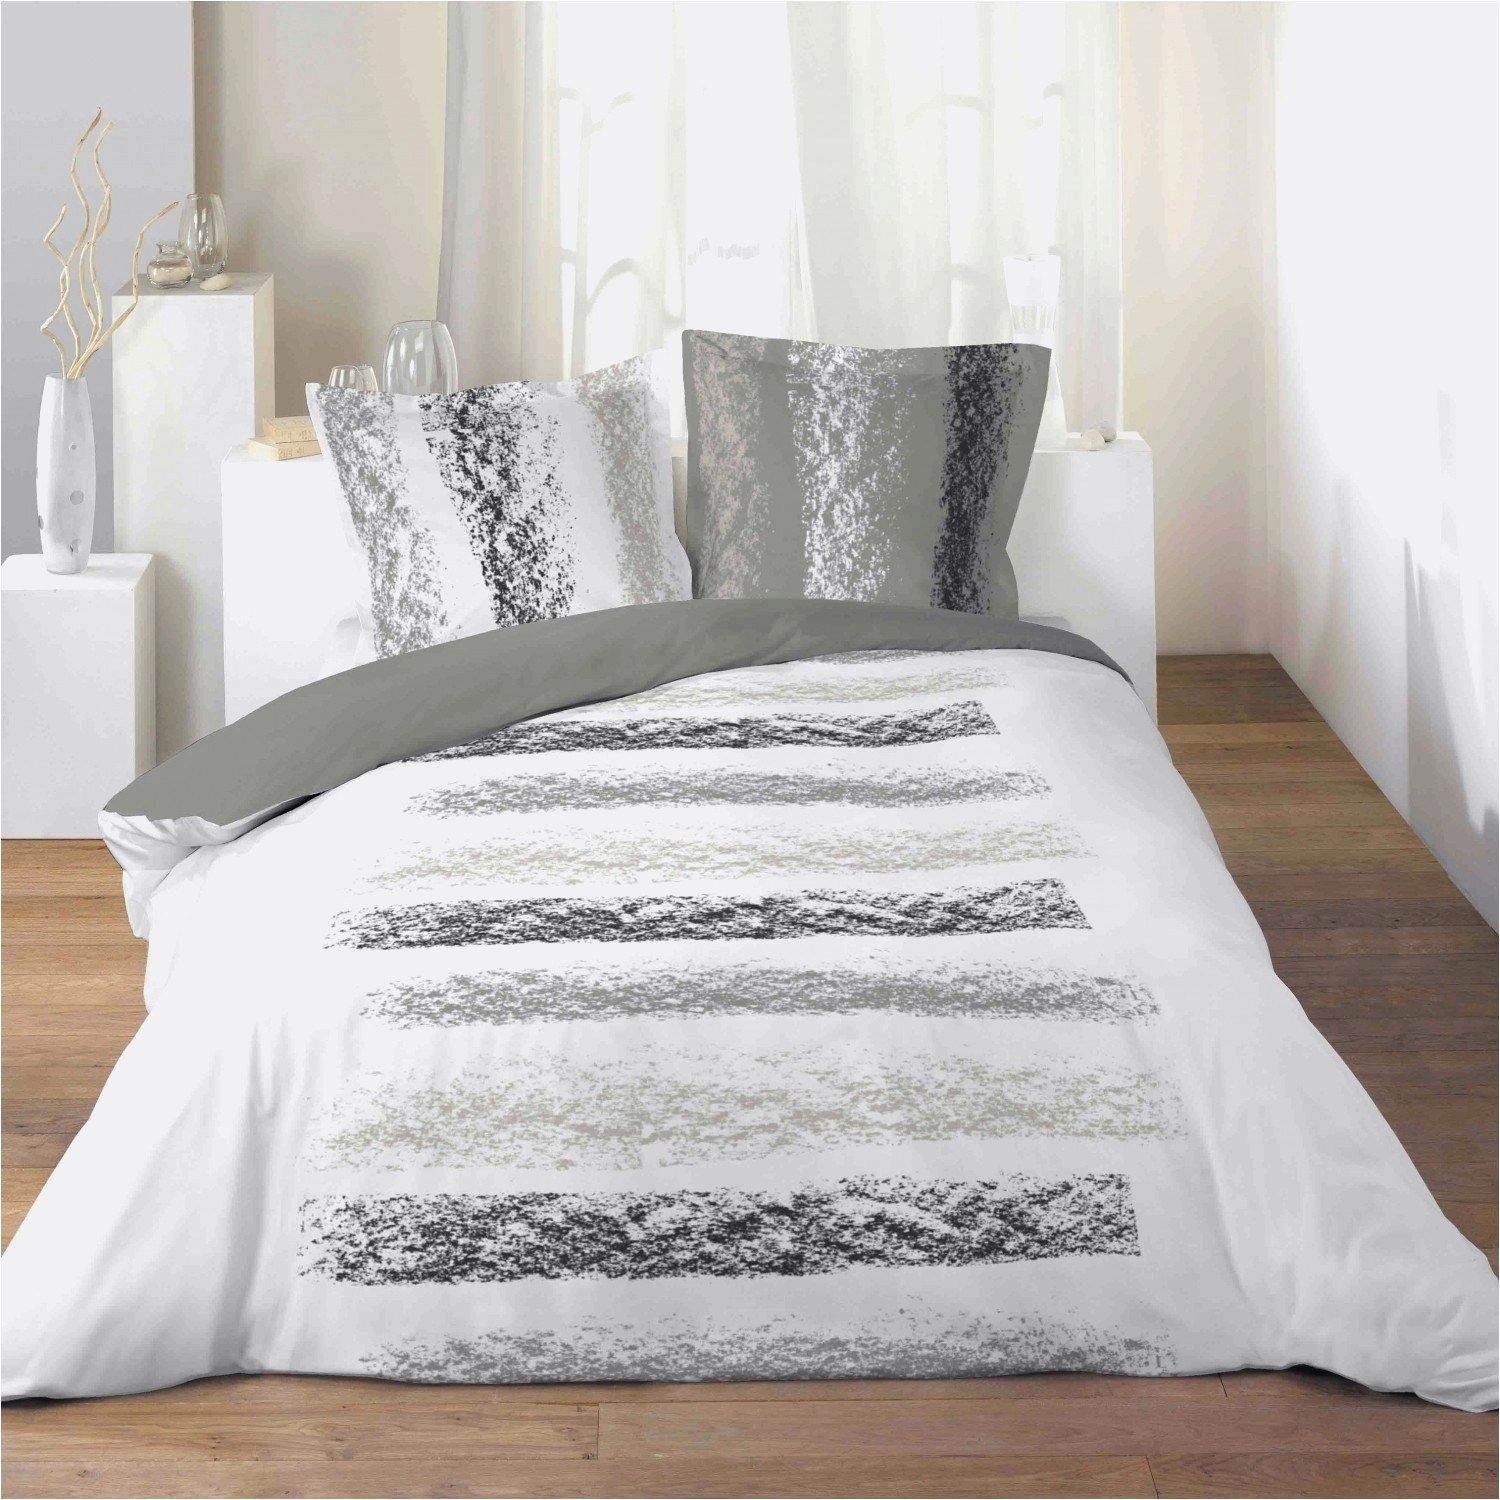 Housse Couette Ado Fille